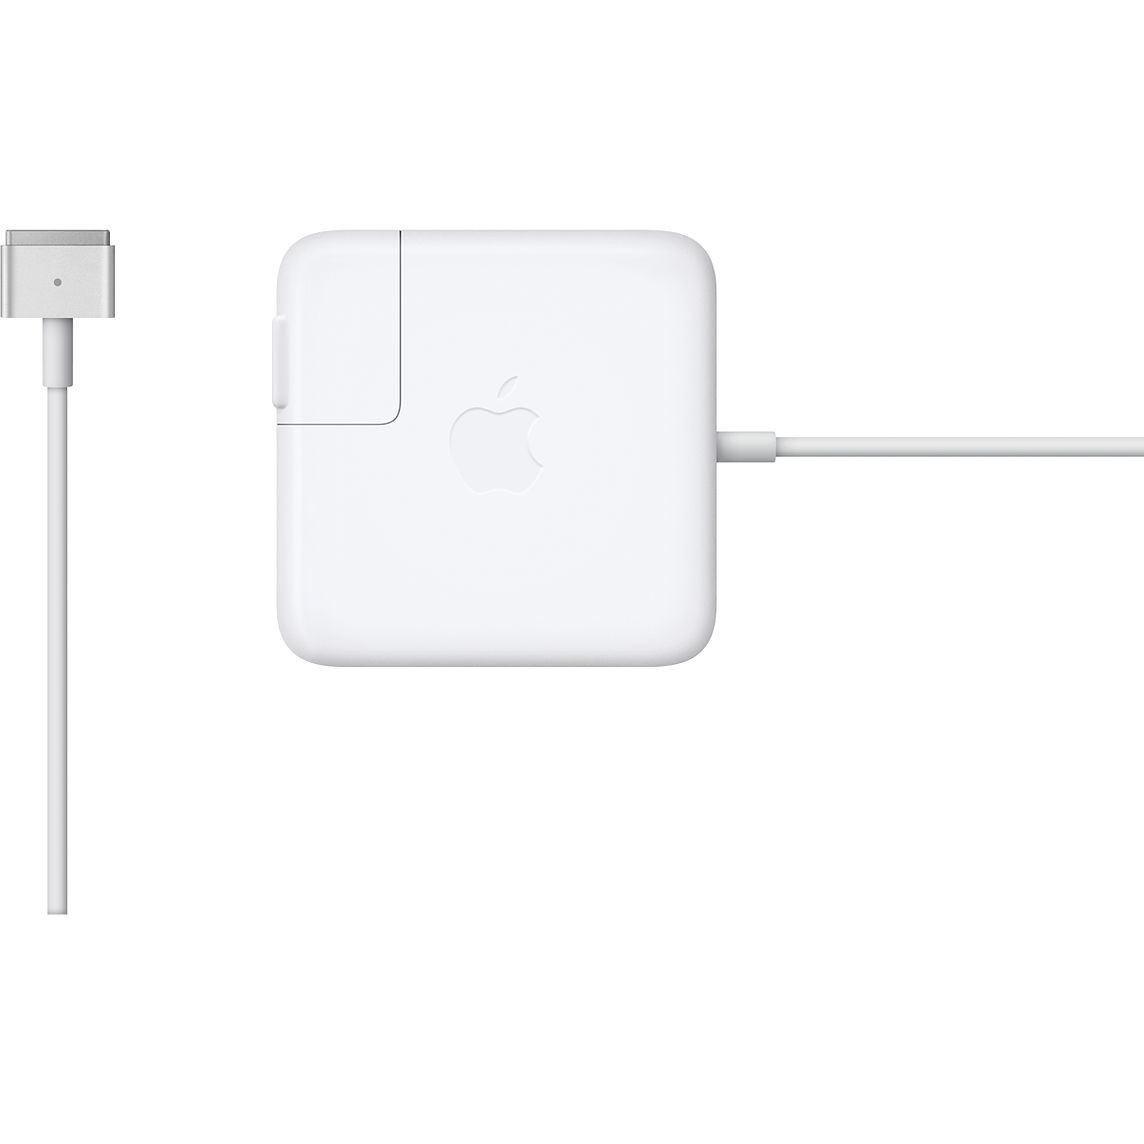 Carregador Apple MagSafe 2 de 85W para MacBook Pro Tela Retina, Branco